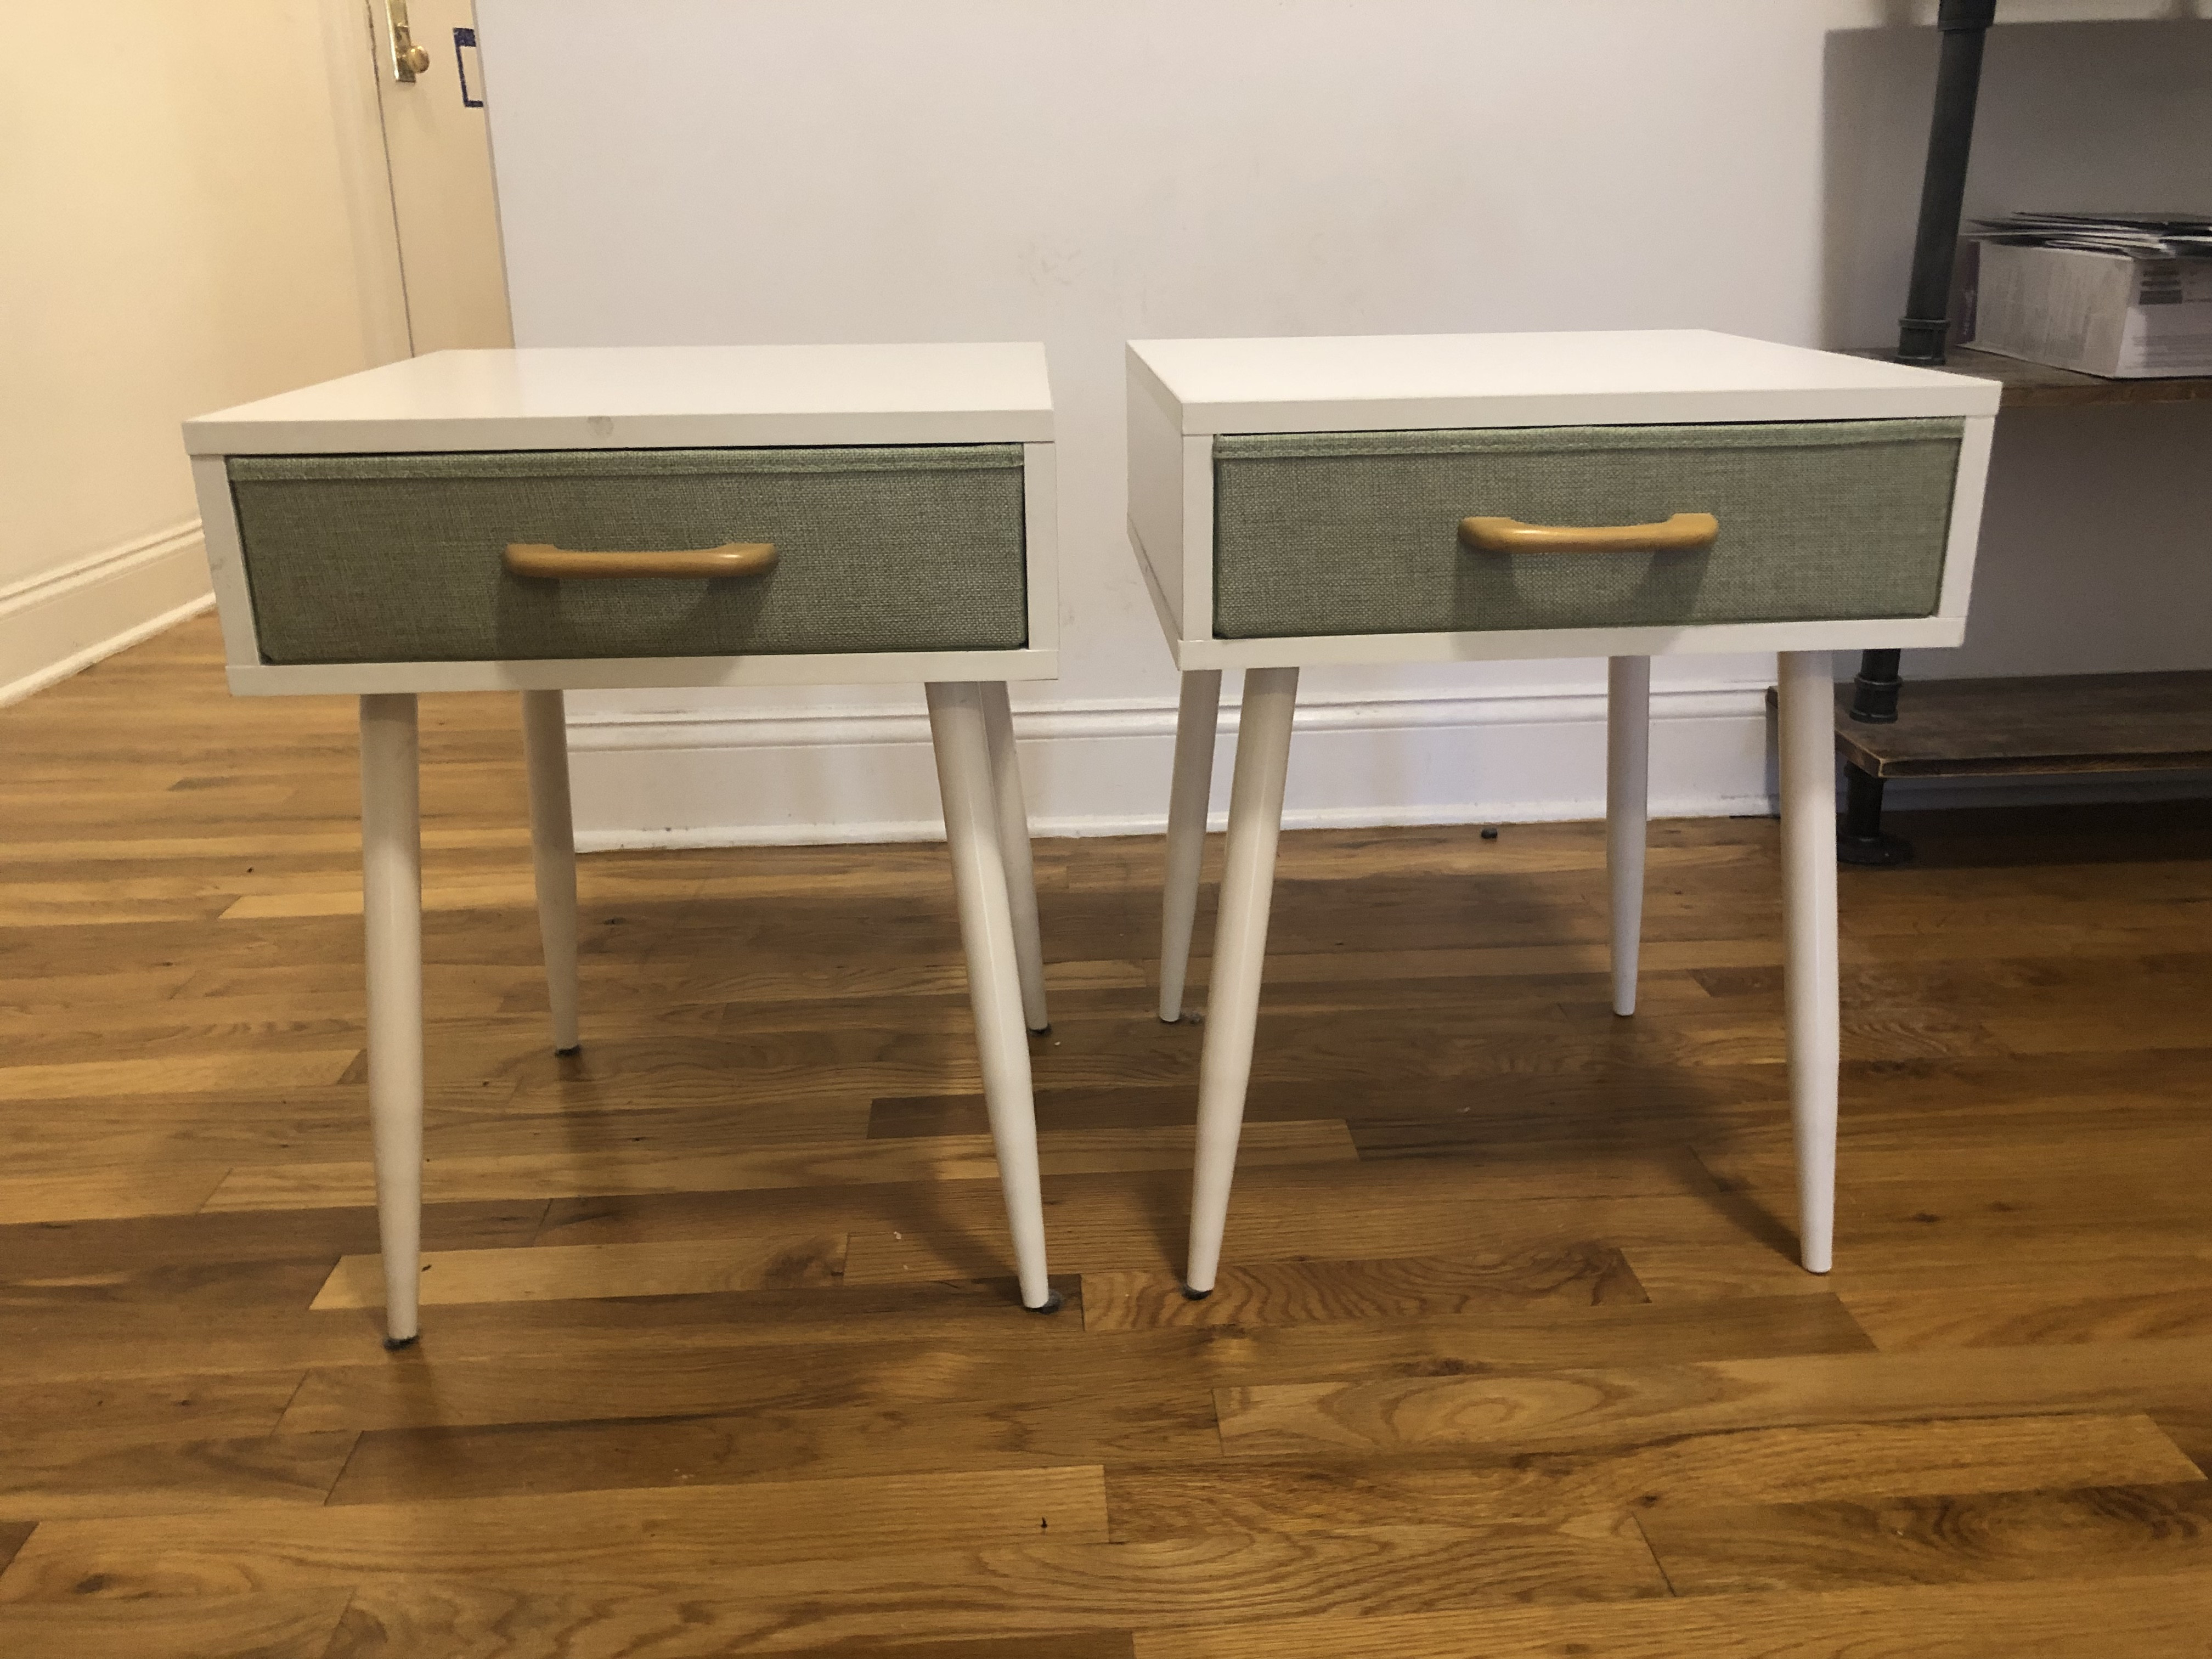 White and Green Nightstands